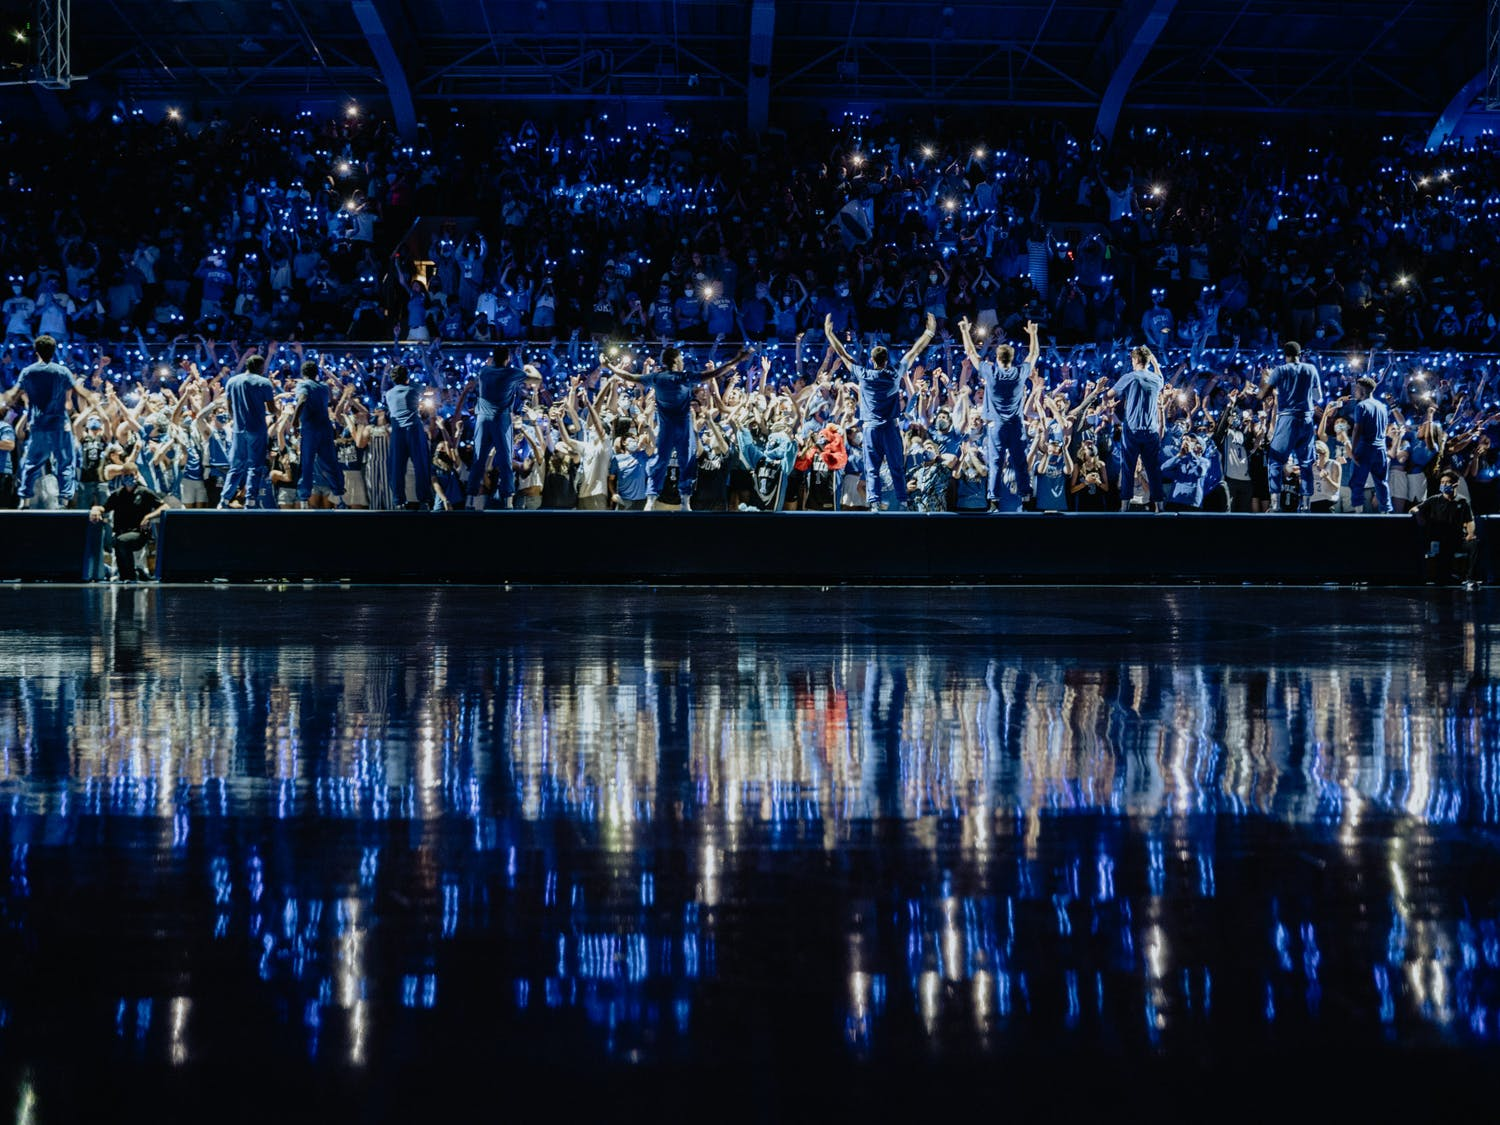 The energy in Cameron Indoor Stadium was through the roof Friday night as the Blue Devils took the court for Coach K's final Countdown to Craziness. In addition to our analysis of the action, photographers Aaron Zhao and Rebecca Schneid captured the excitement visually.